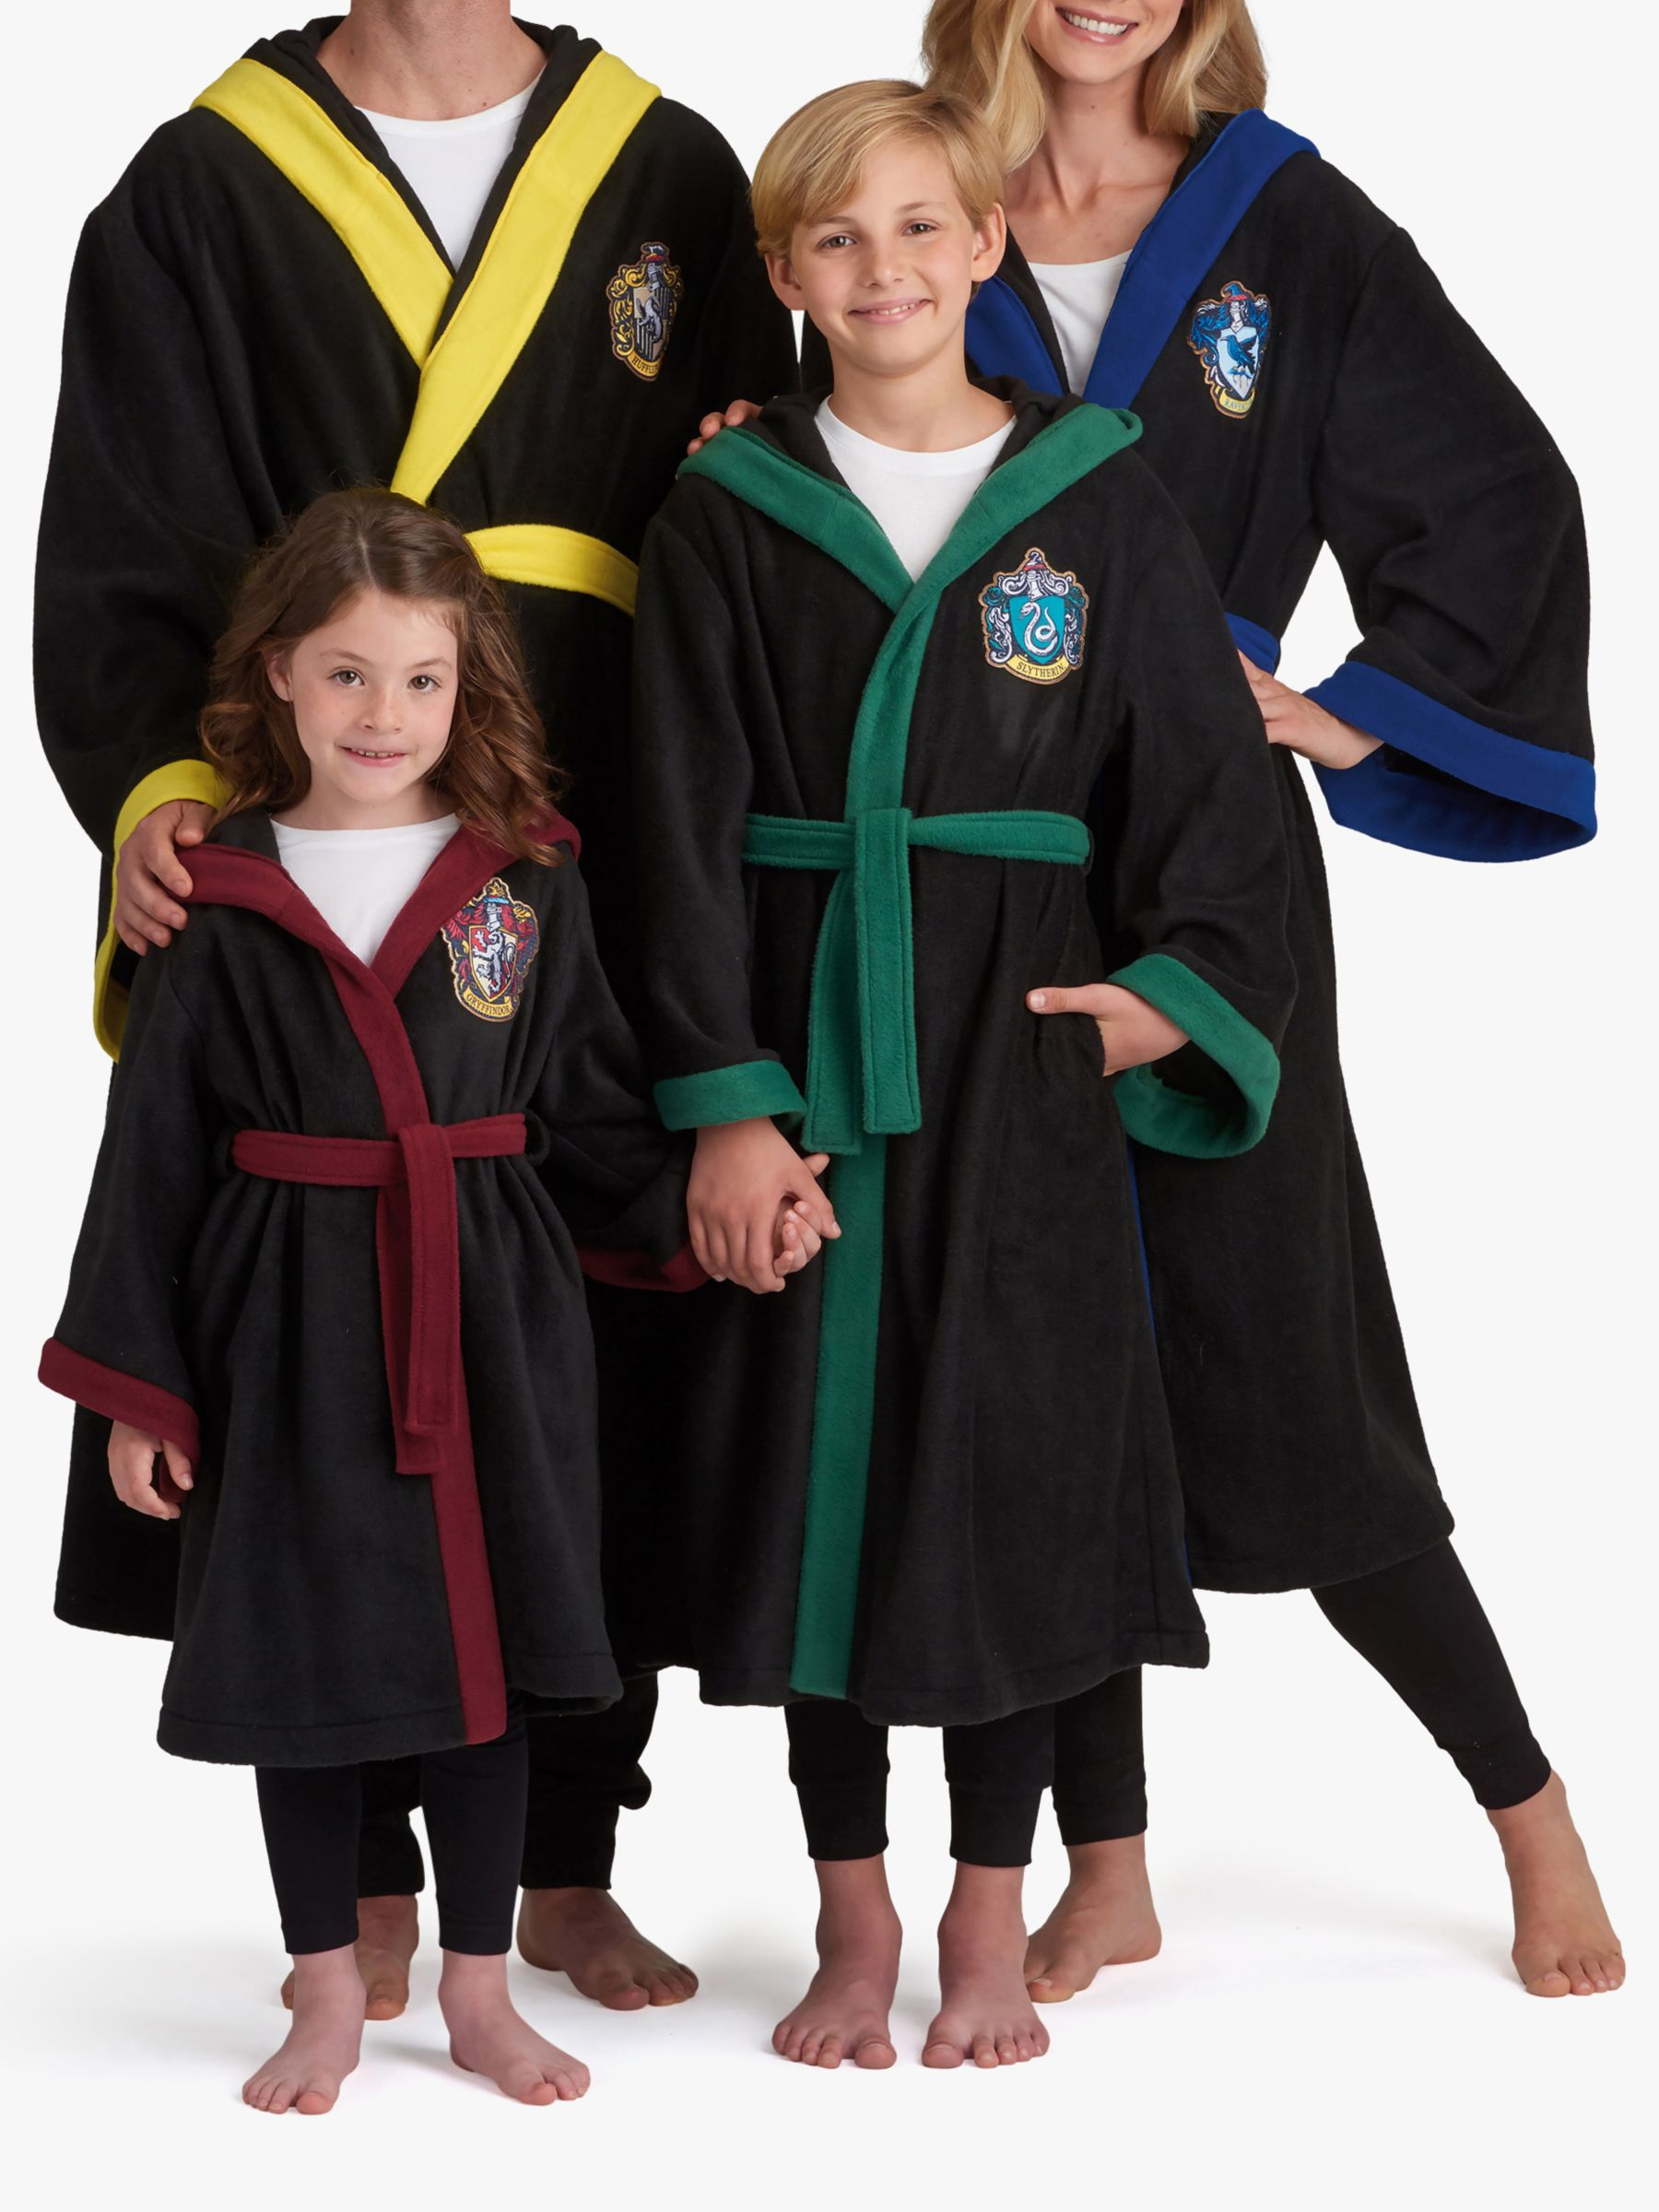 Simplicity Simplicity Unisex Harry Potter Sleepwear Sewing Pattern, 9022A, A